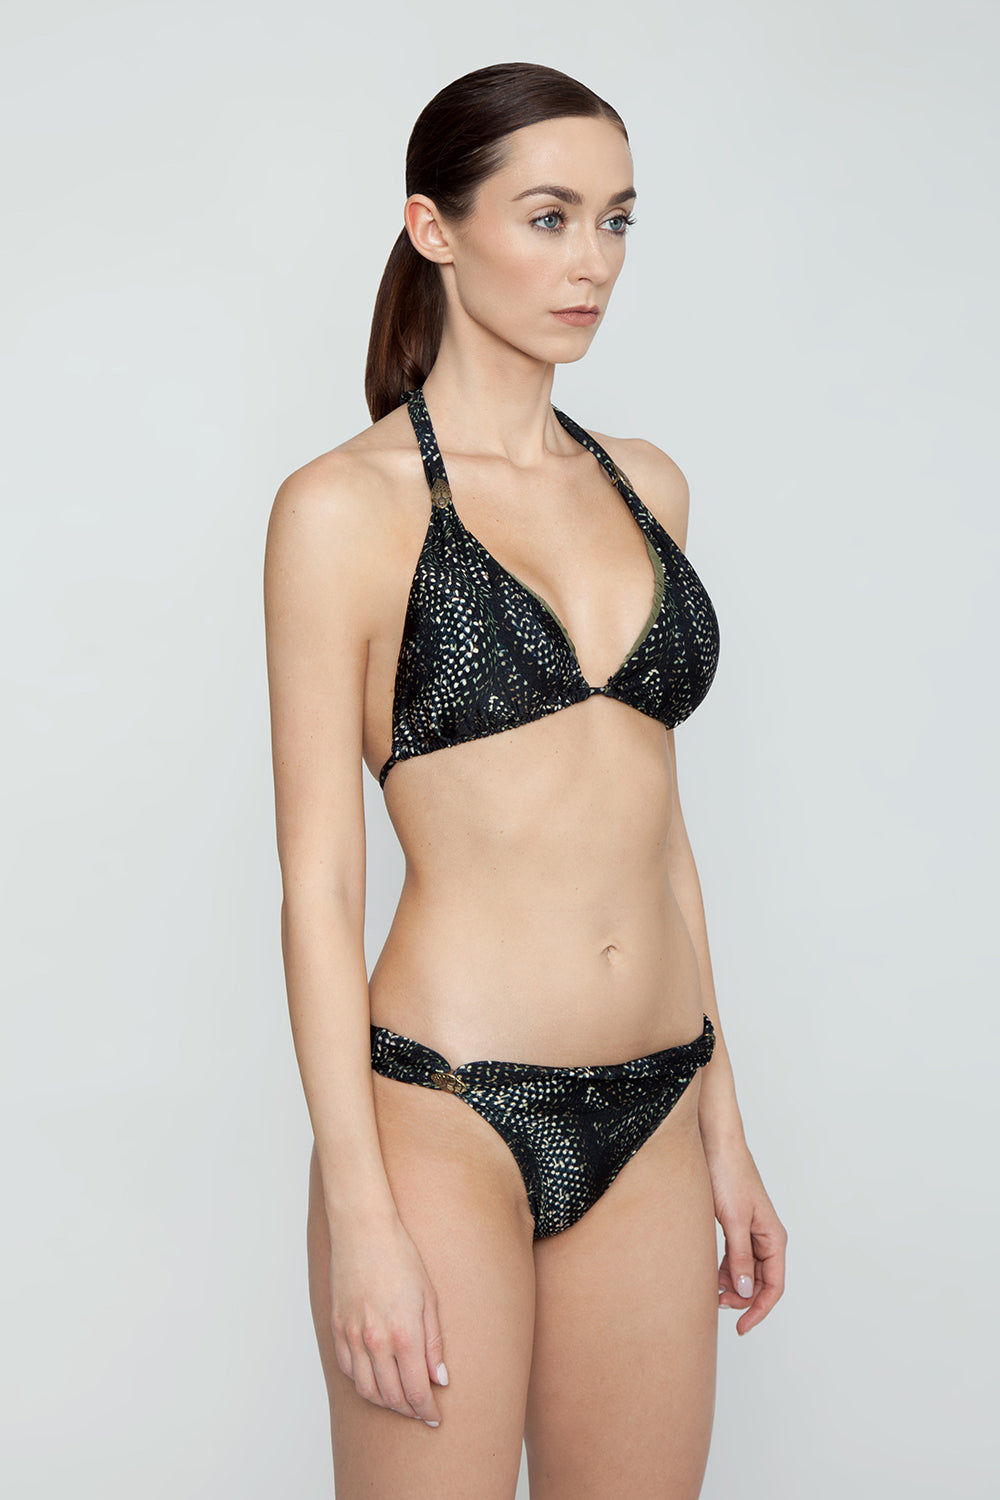 ROSA CHA Carla Strappy Bikini Top - Snake Print Bikini Top | Snake Print| Rosa Cha Carla Strappy Bikini Top - Snake Print Fabulous black snake print triangle bikini top with fabric loop detail. Elegant snake printed swim fabric will have you dreaming of romantic hideaways and secret beaches on far-off shores. Fabric loop sliders on straps can be slid up for fuller coverage or scrunched down to show more skin. Thick halter straps and string tie back closure are adjustable and allow you to customize the fit of this bikini top Side View